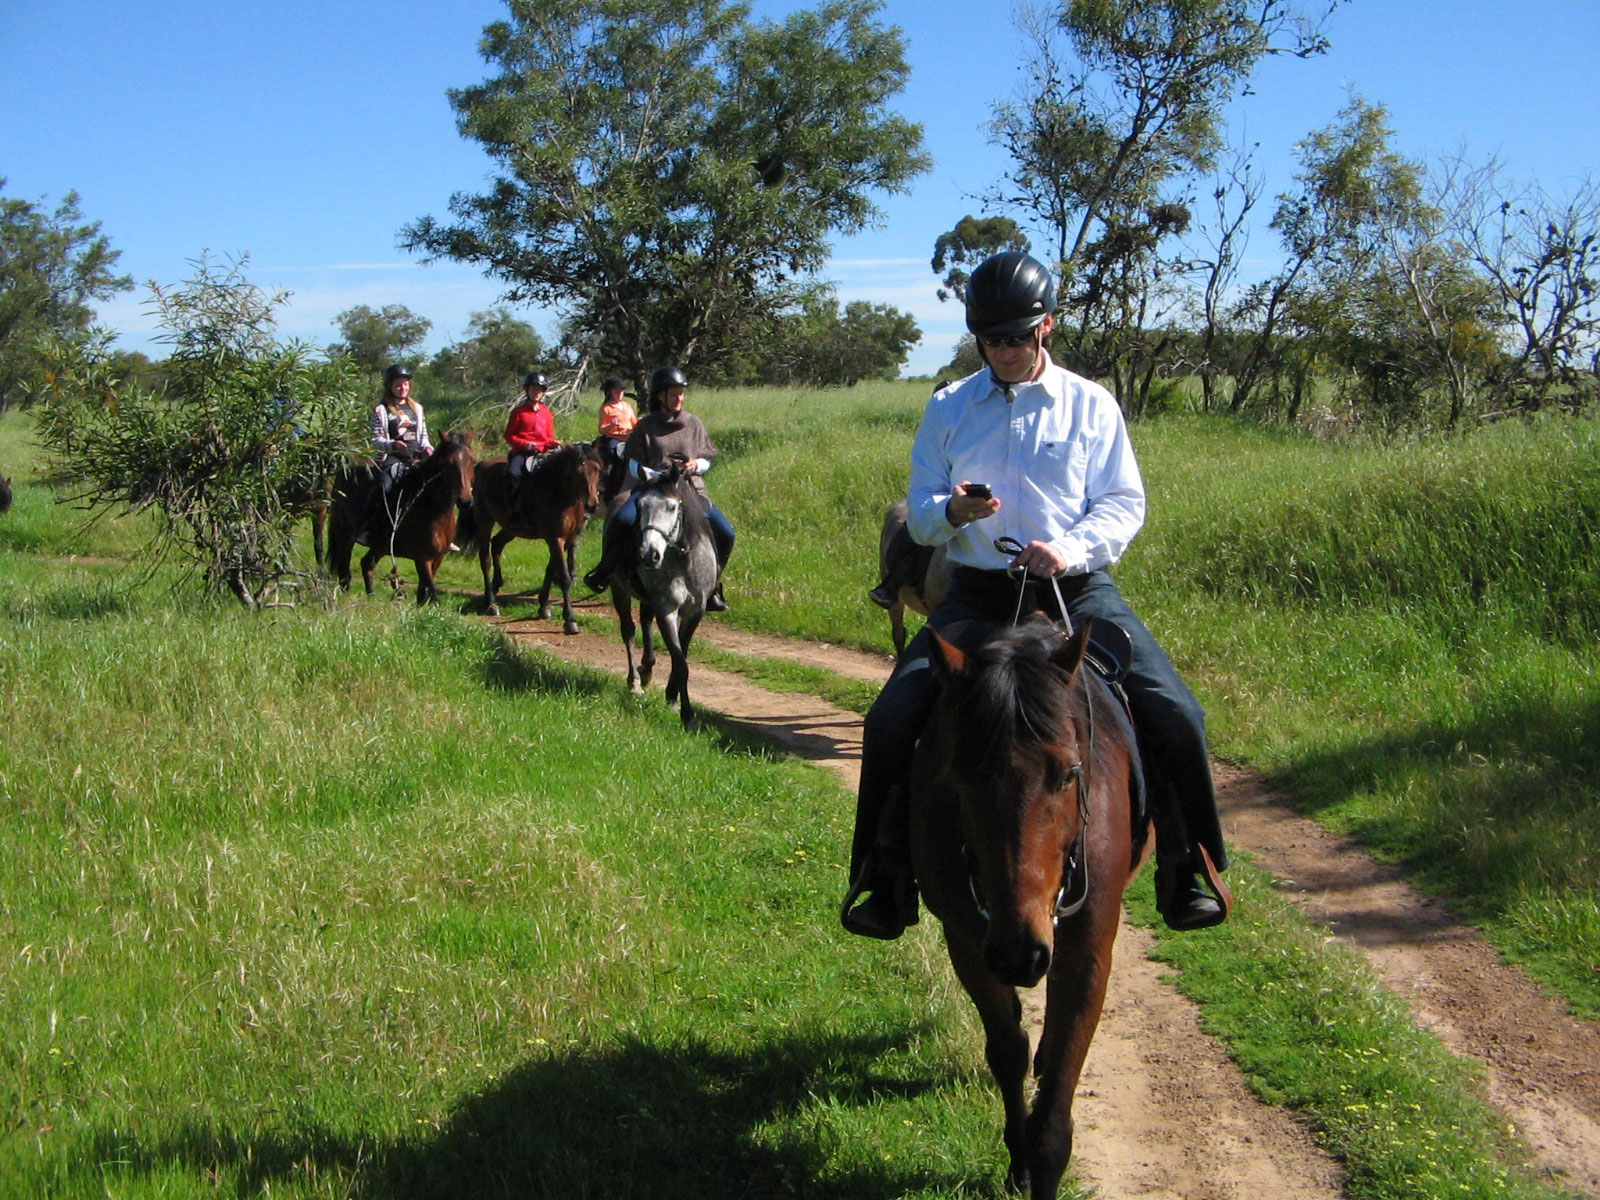 Horseback riding keeps kids active.